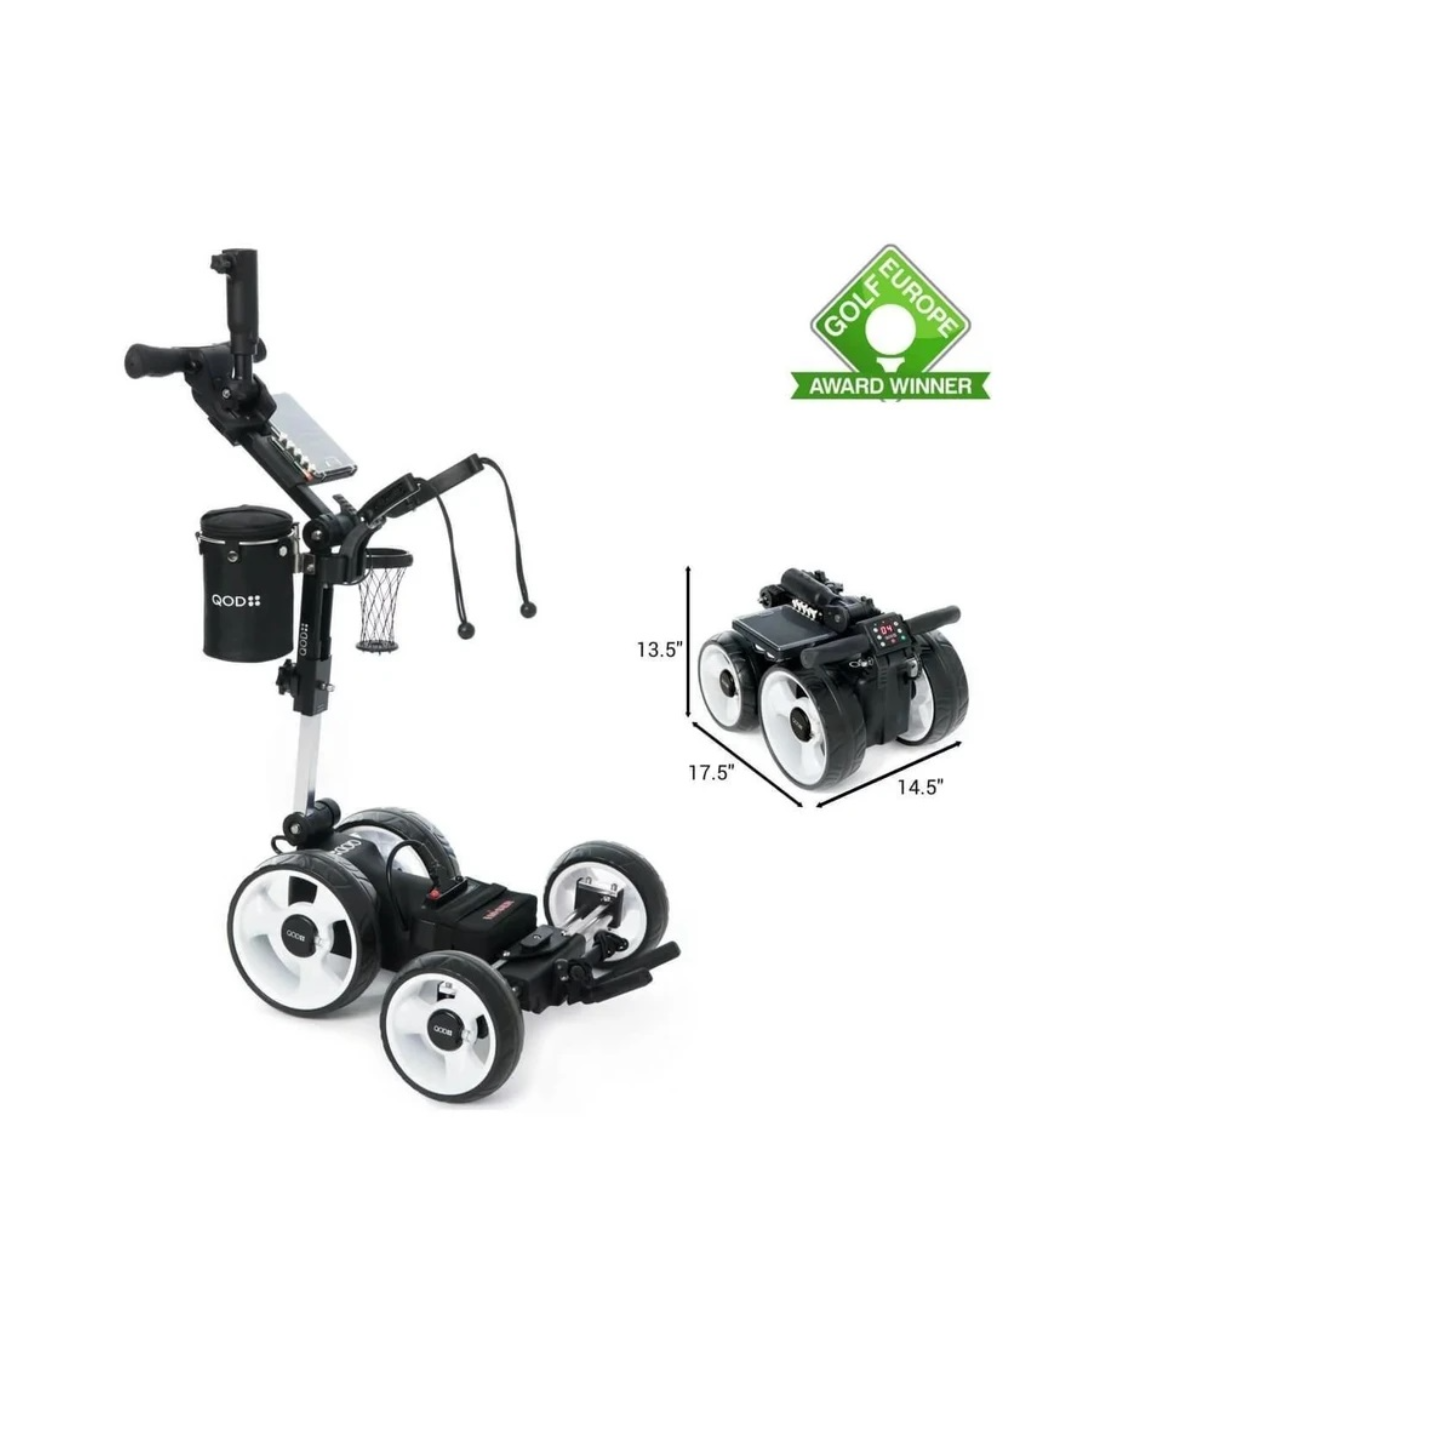 QOD Electric Golf Trolley